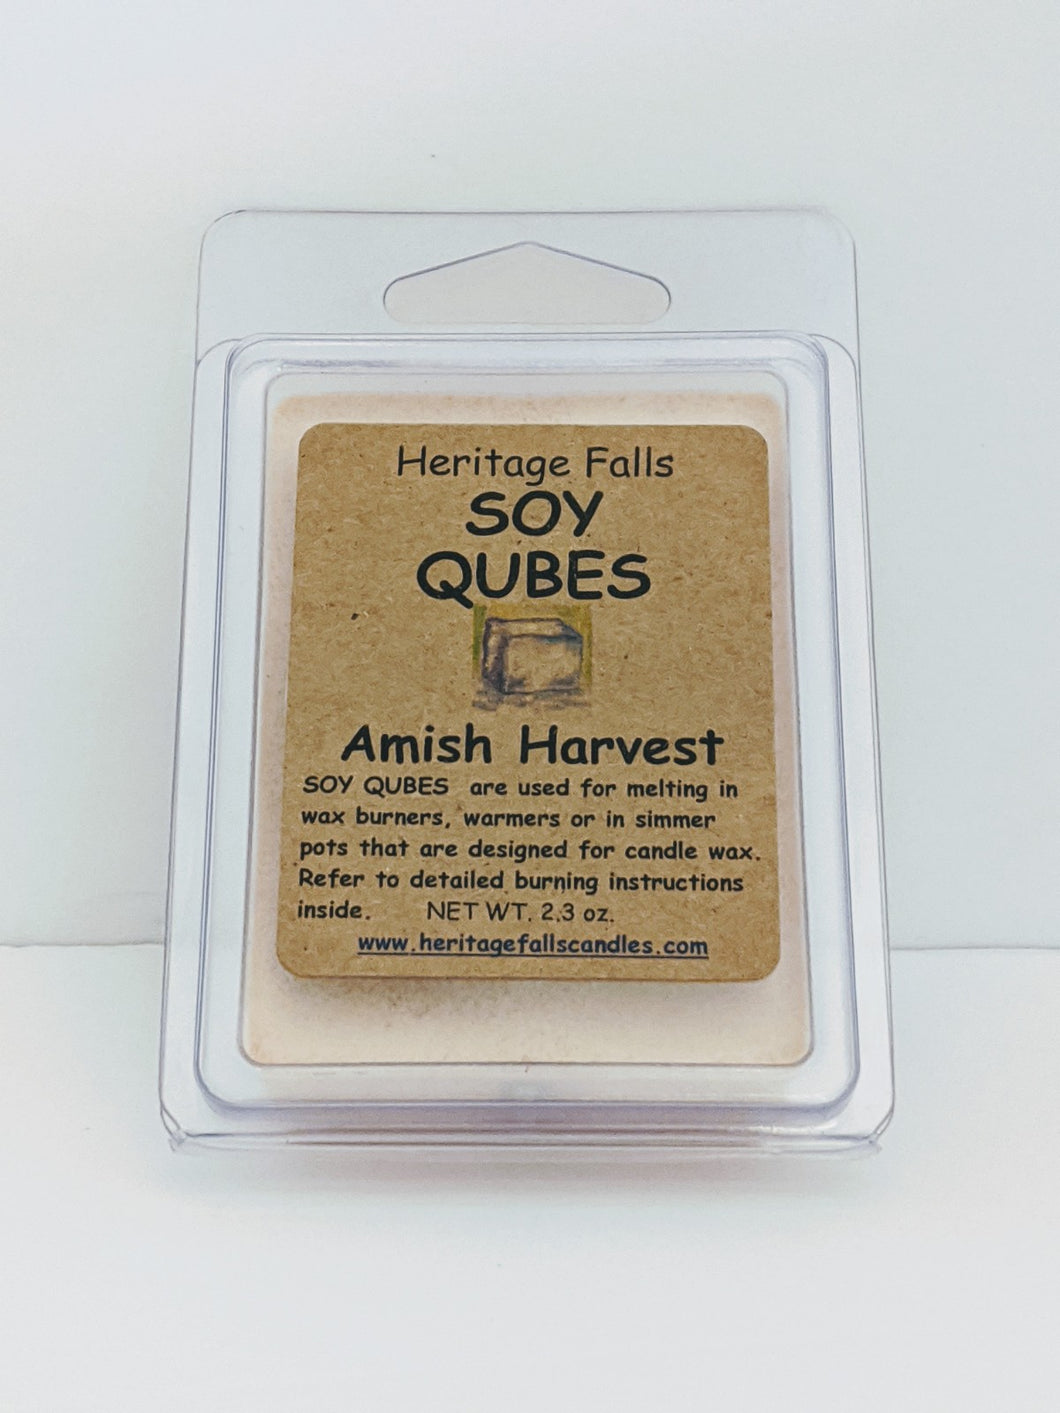 Amish Harvest - Qubes